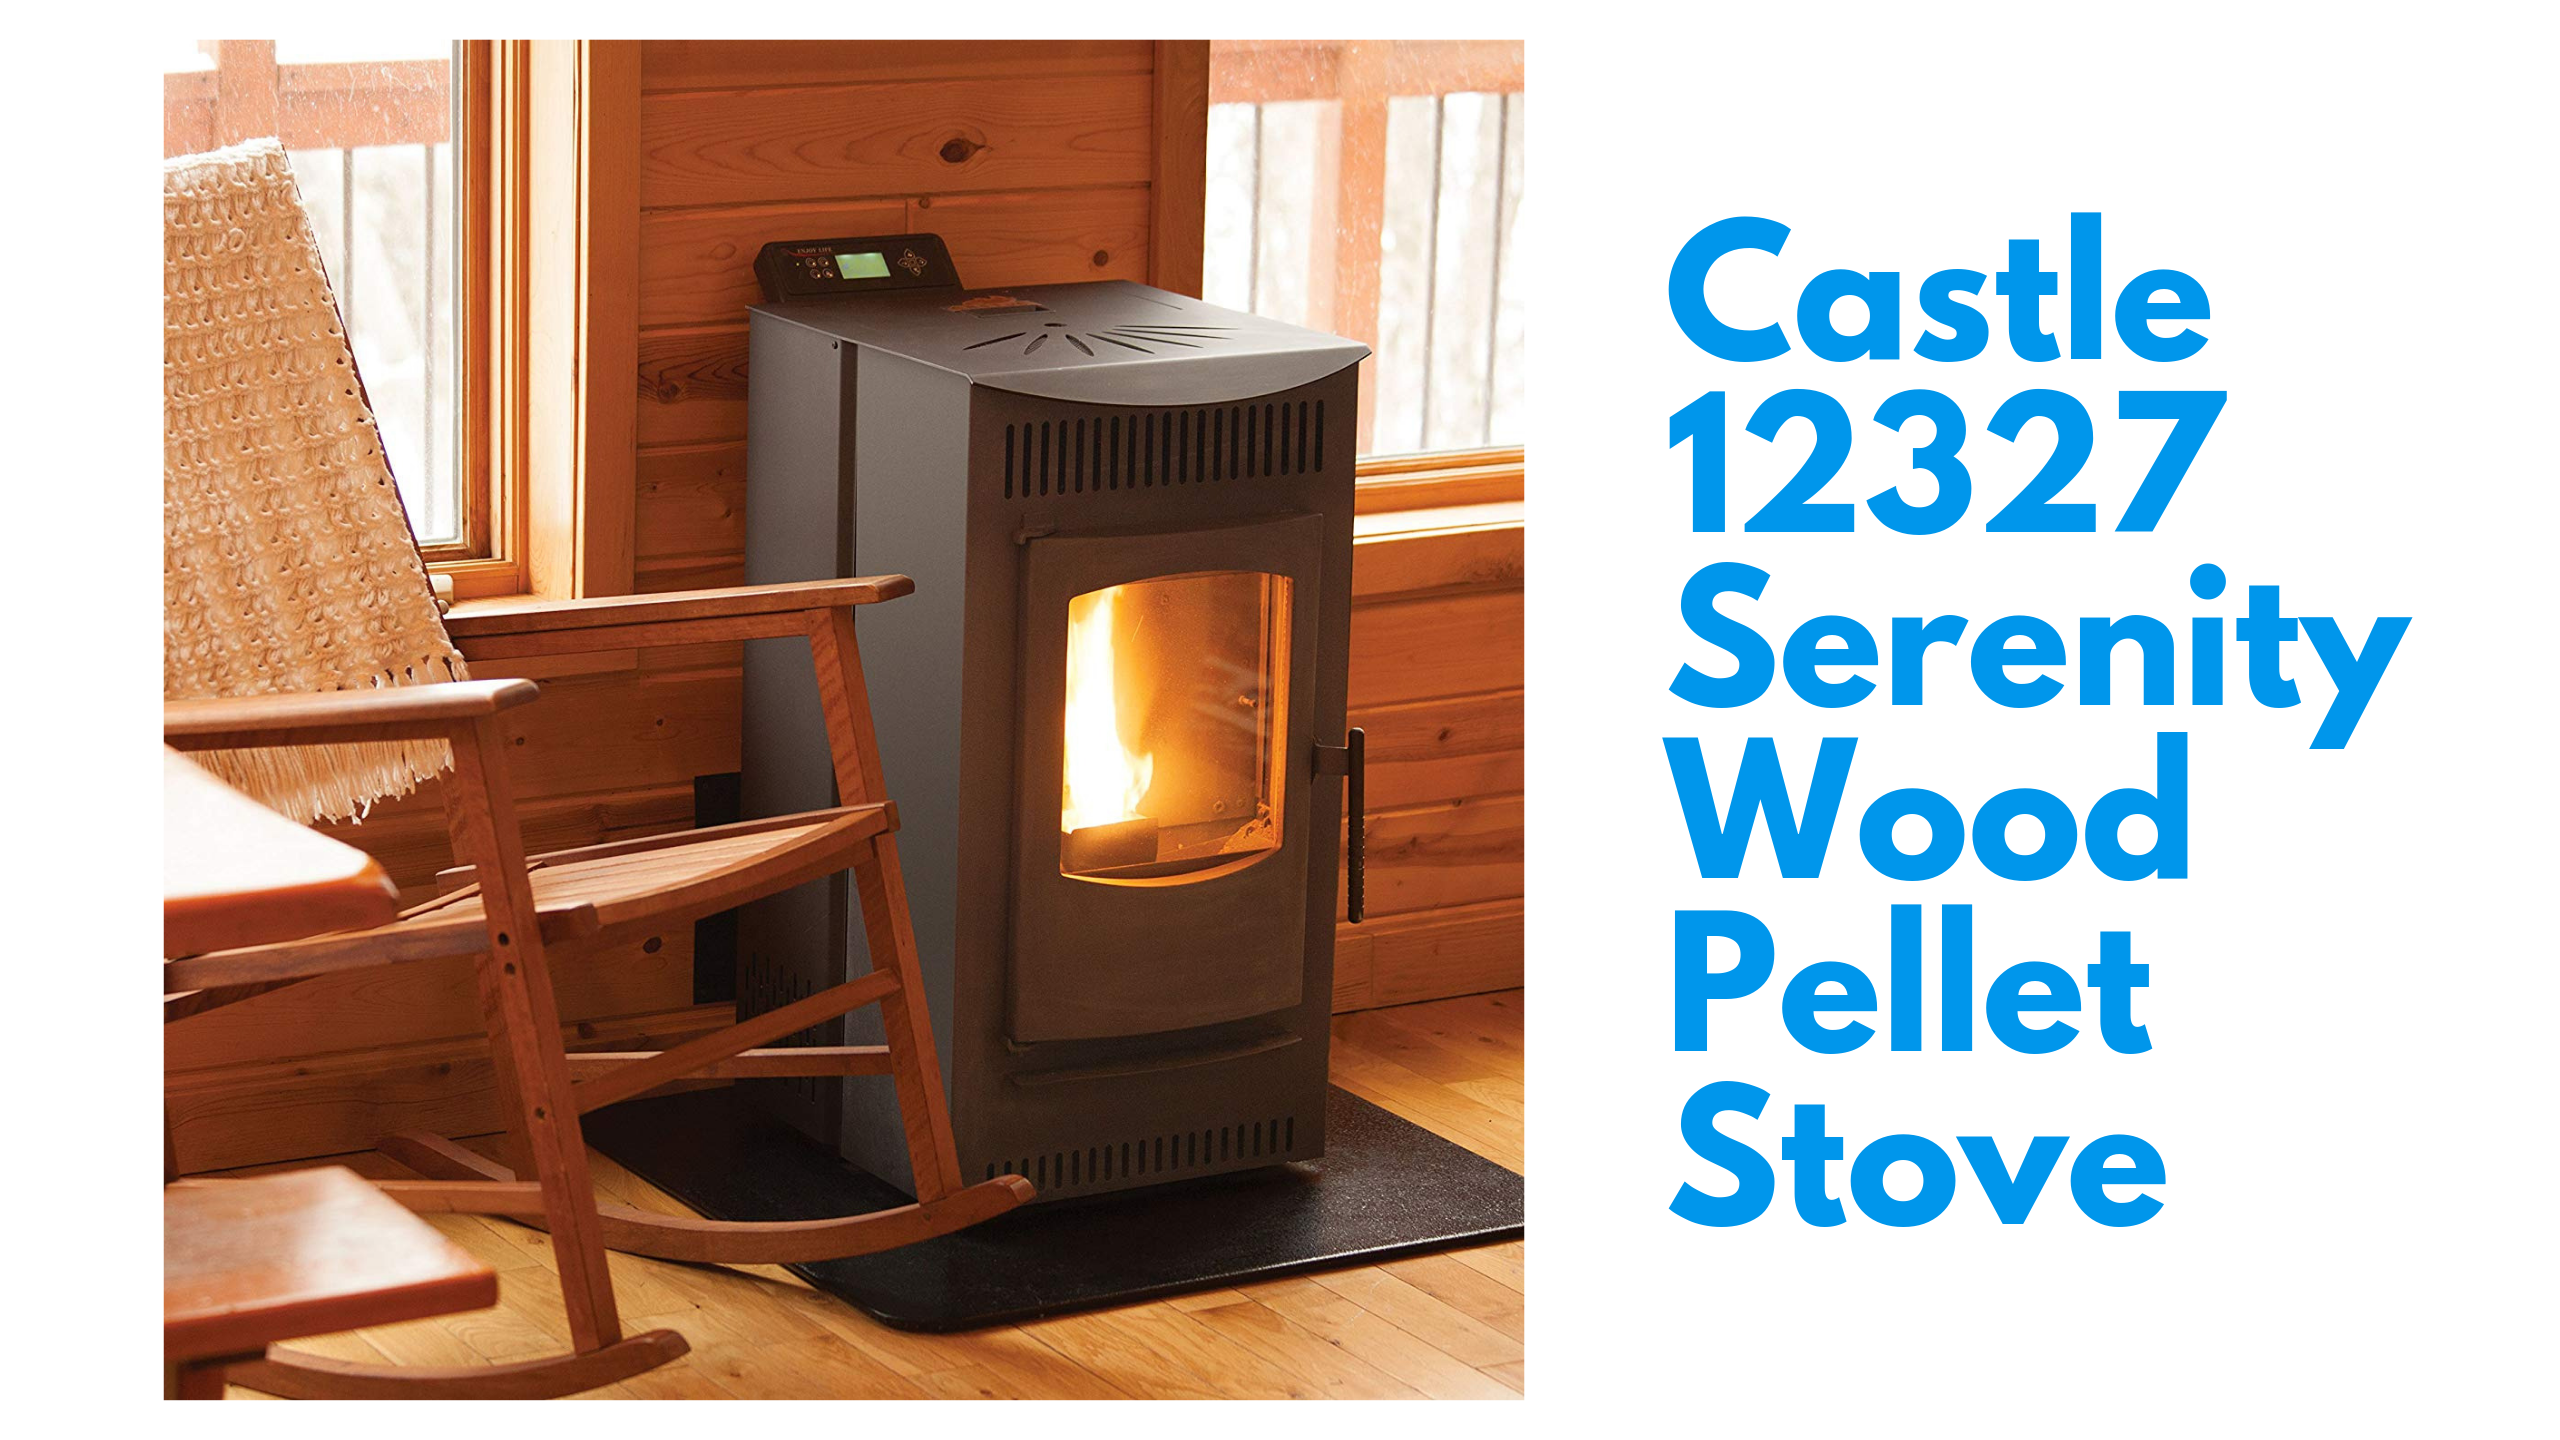 Castle 12327 Serenity Wood Pellet Stove Review In 2019